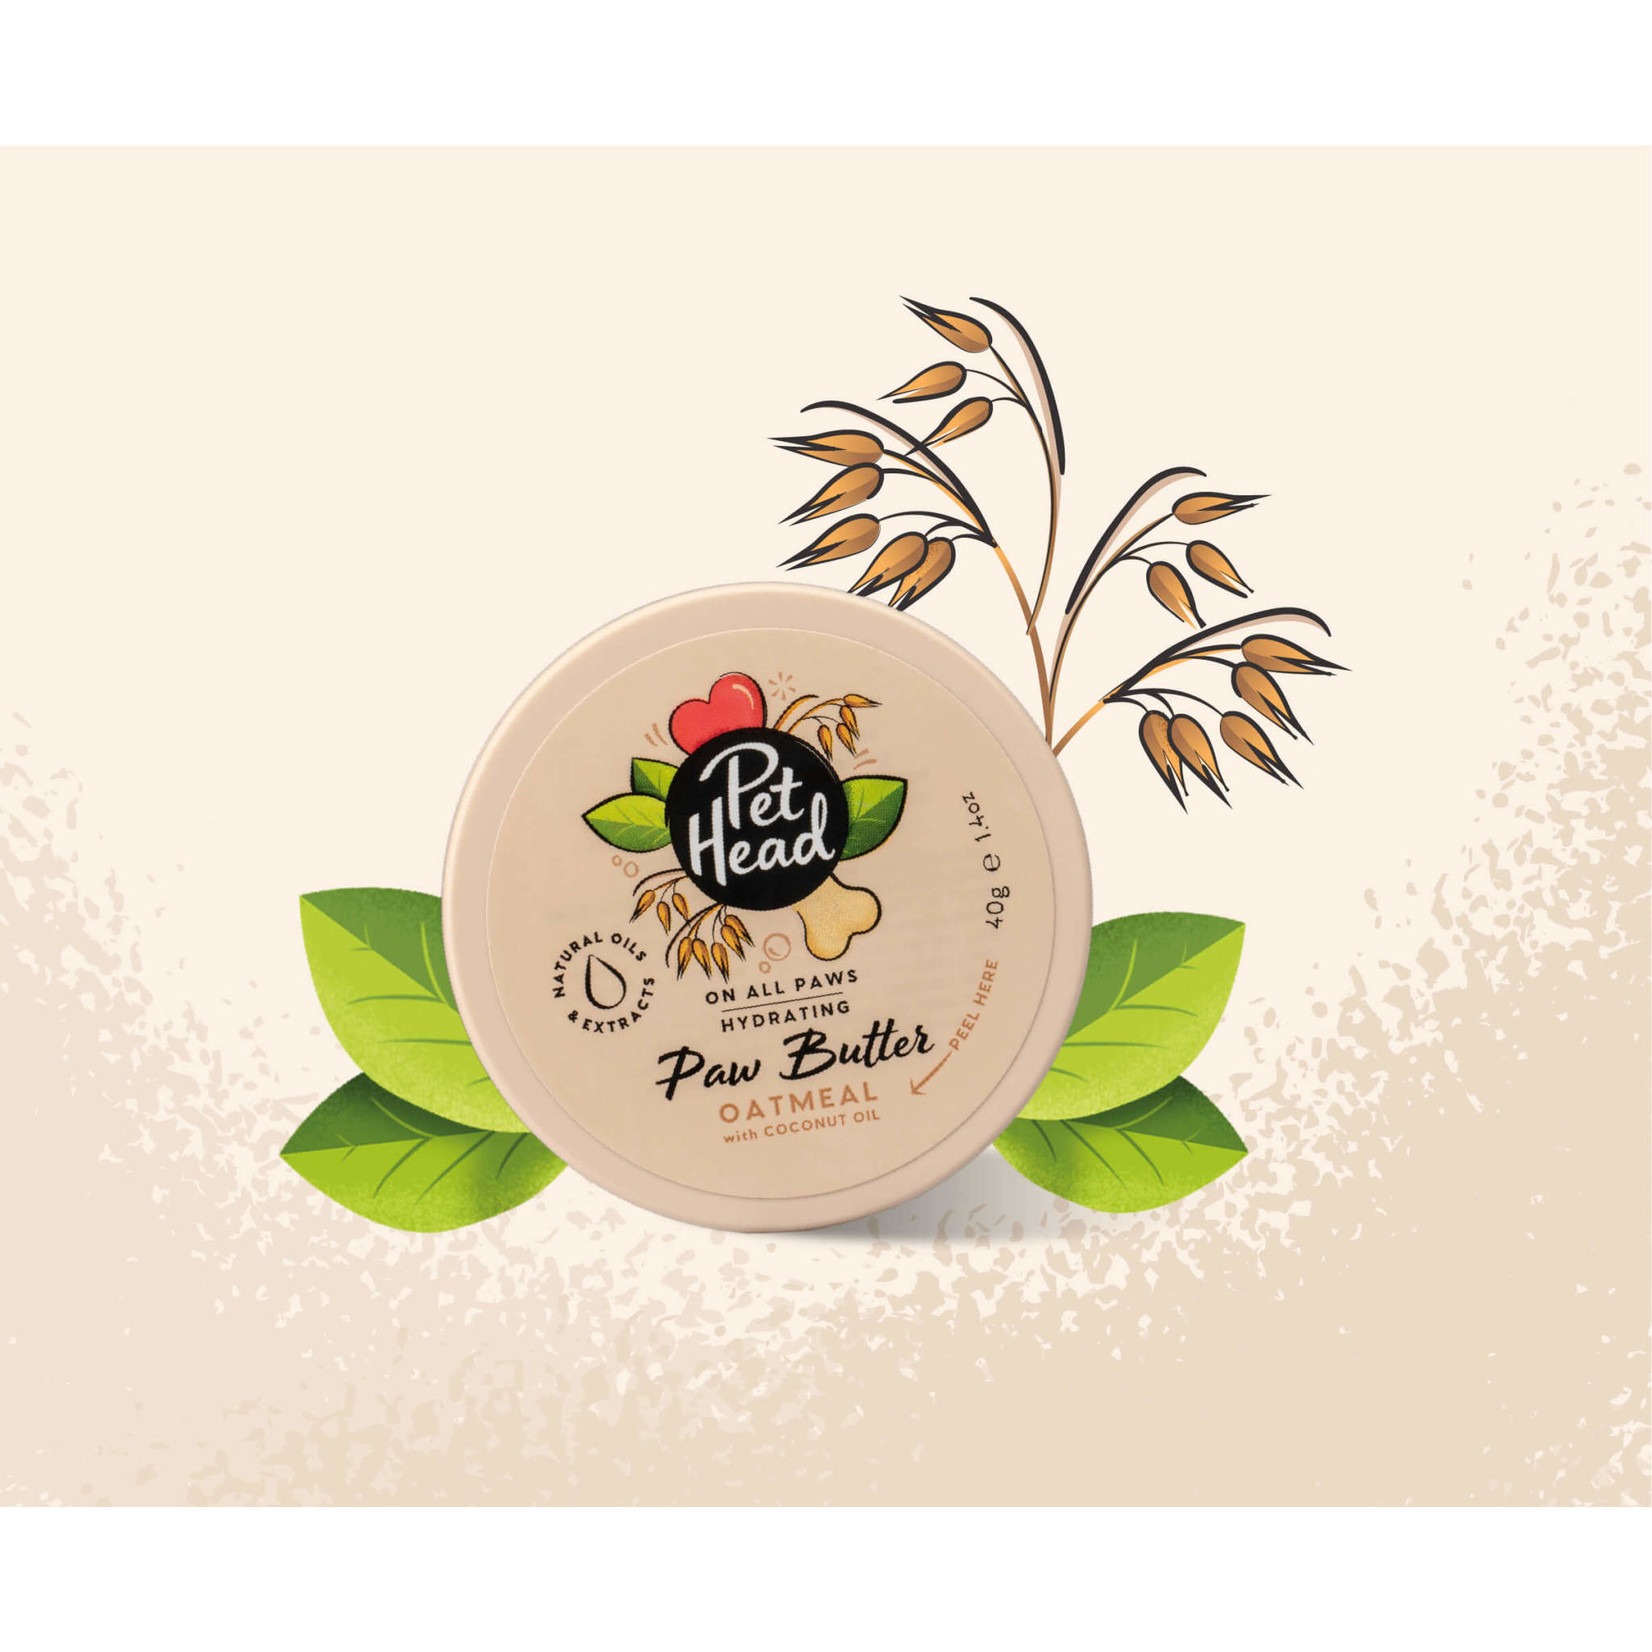 Company of Animals Pet Head On All Paws Oatmeal Paw Butter, 40g